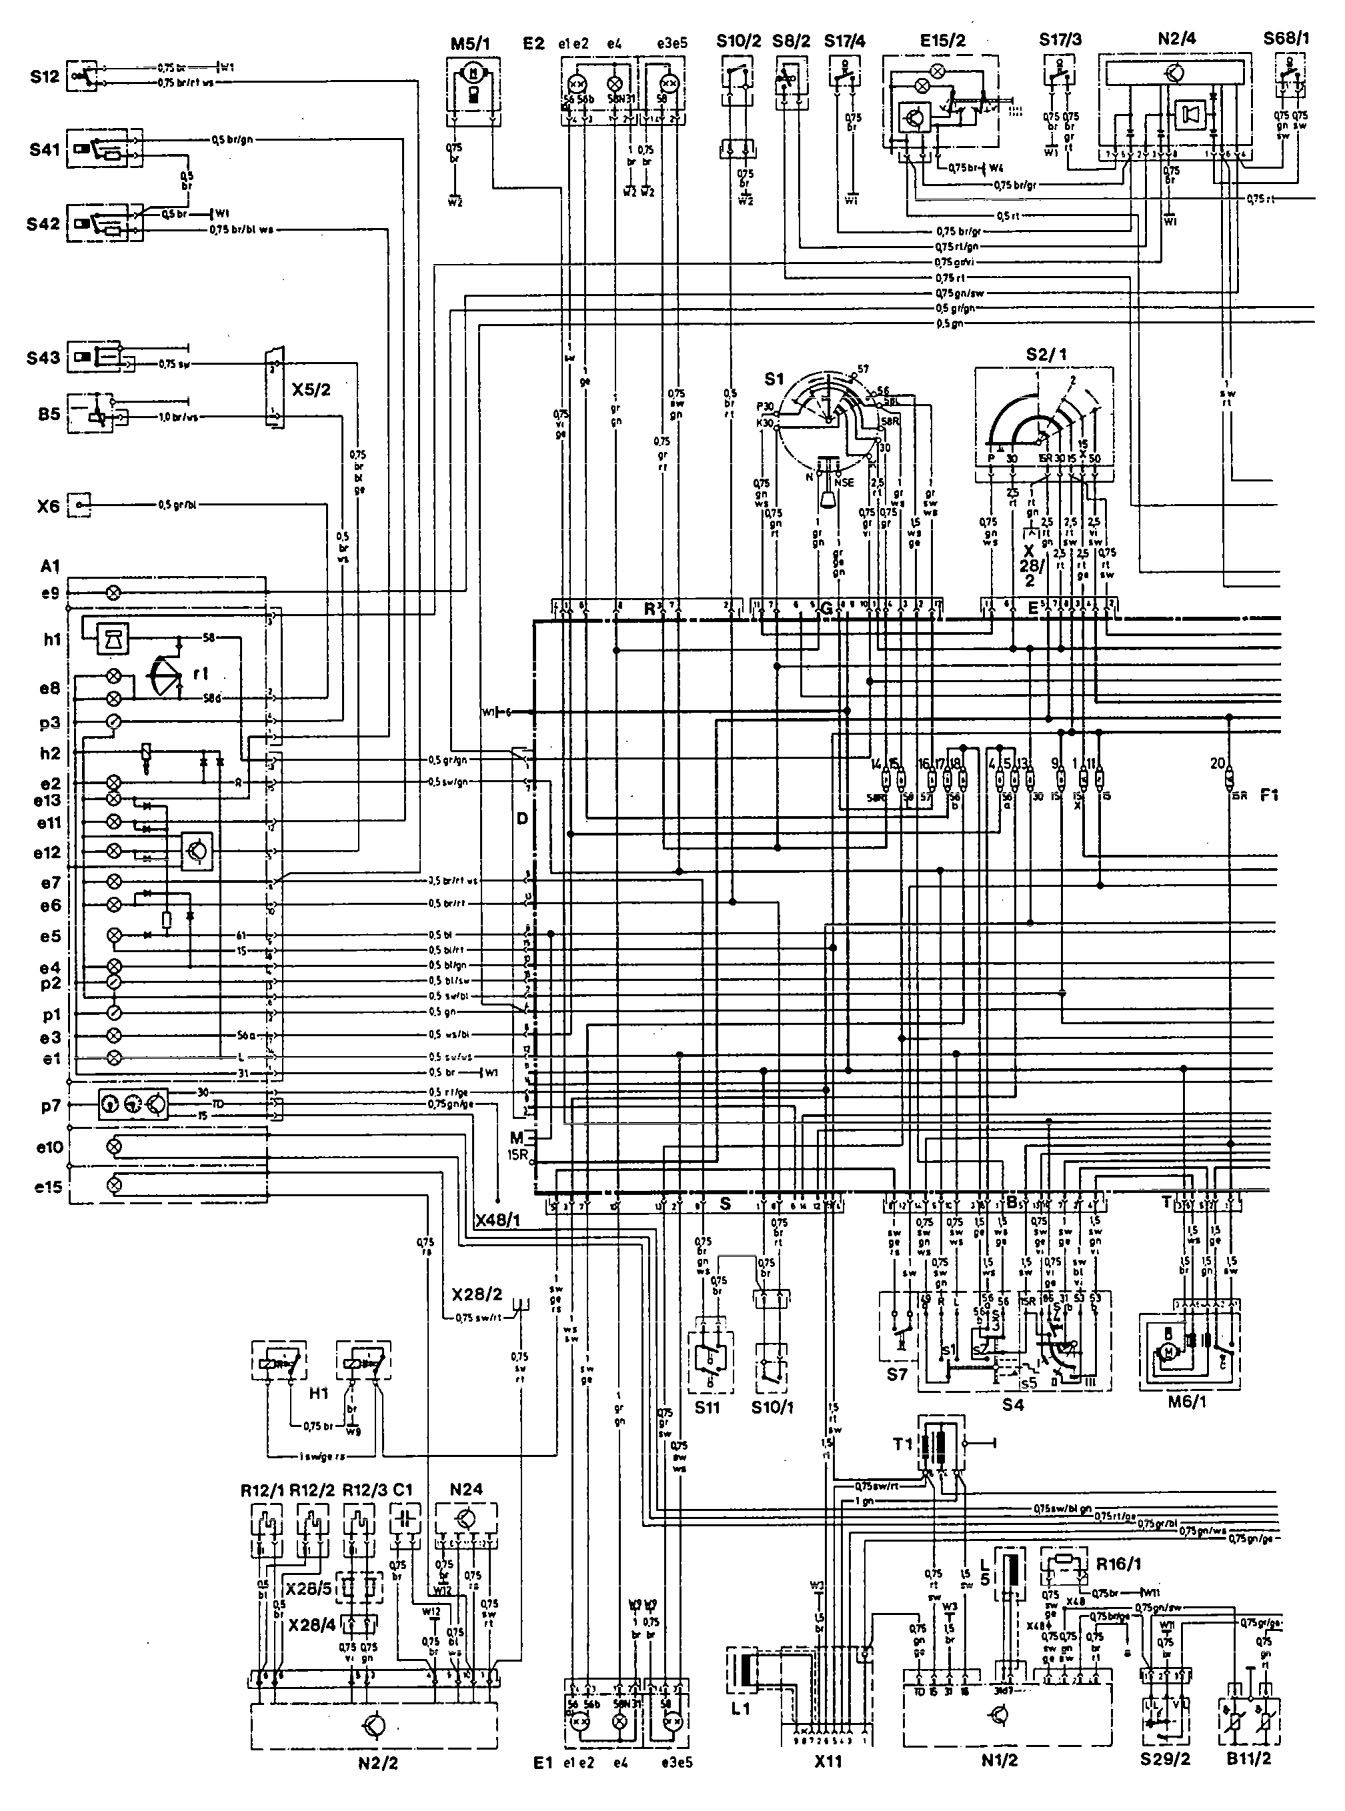 Mercedes Benz Truck Wiring Diagram The Engine Diagrams Complete